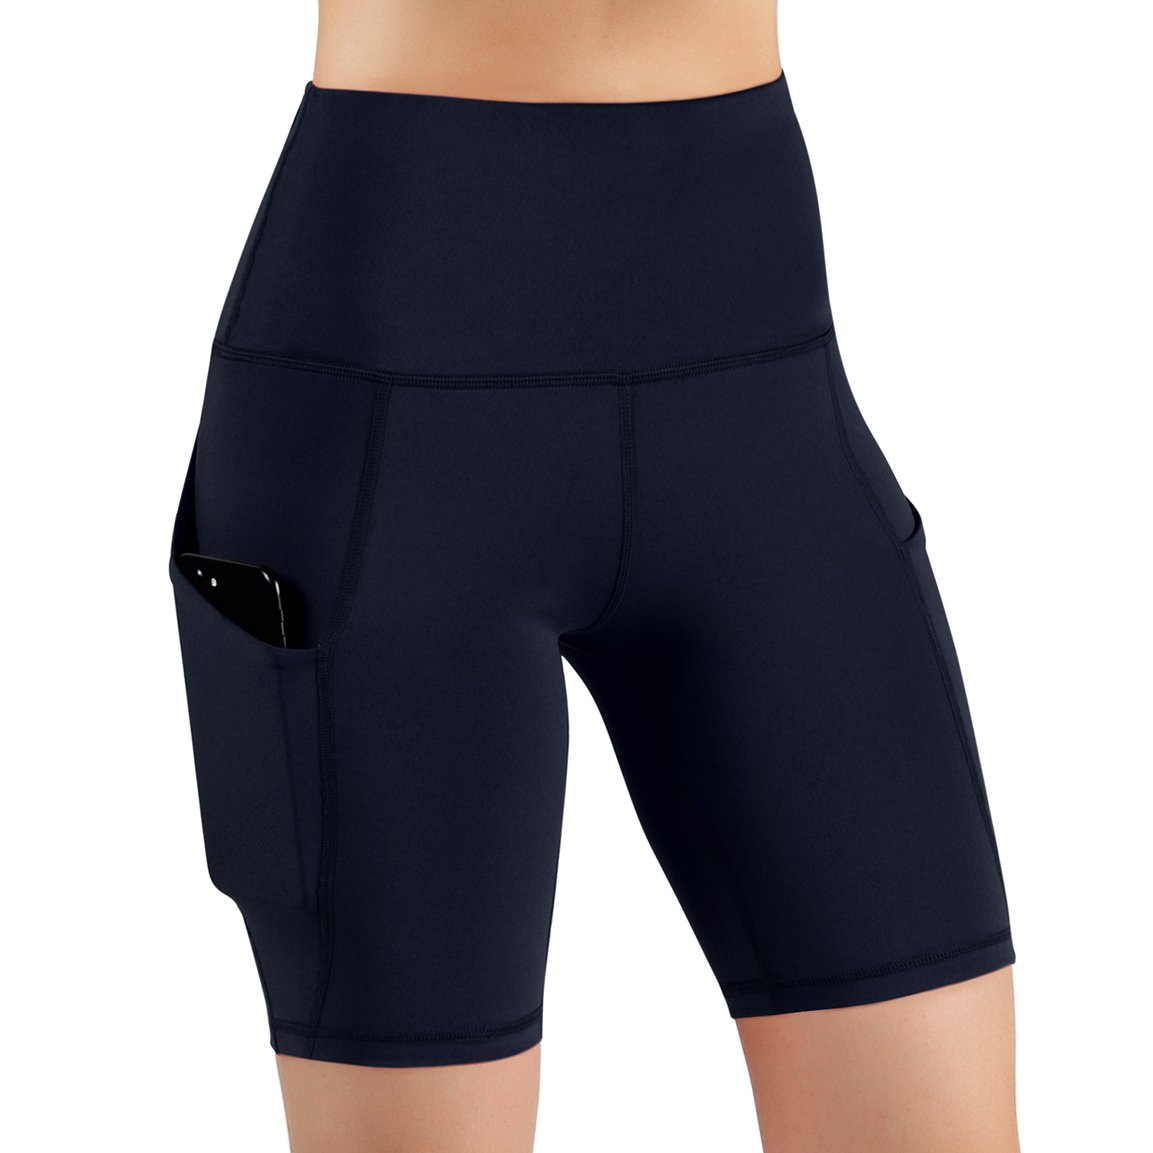 ODODOS High Waist Out Pocket Yoga Short Tummy Control Workout Running Athletic Non See-Through Yoga Shorts,Navy,Large by ODODOS